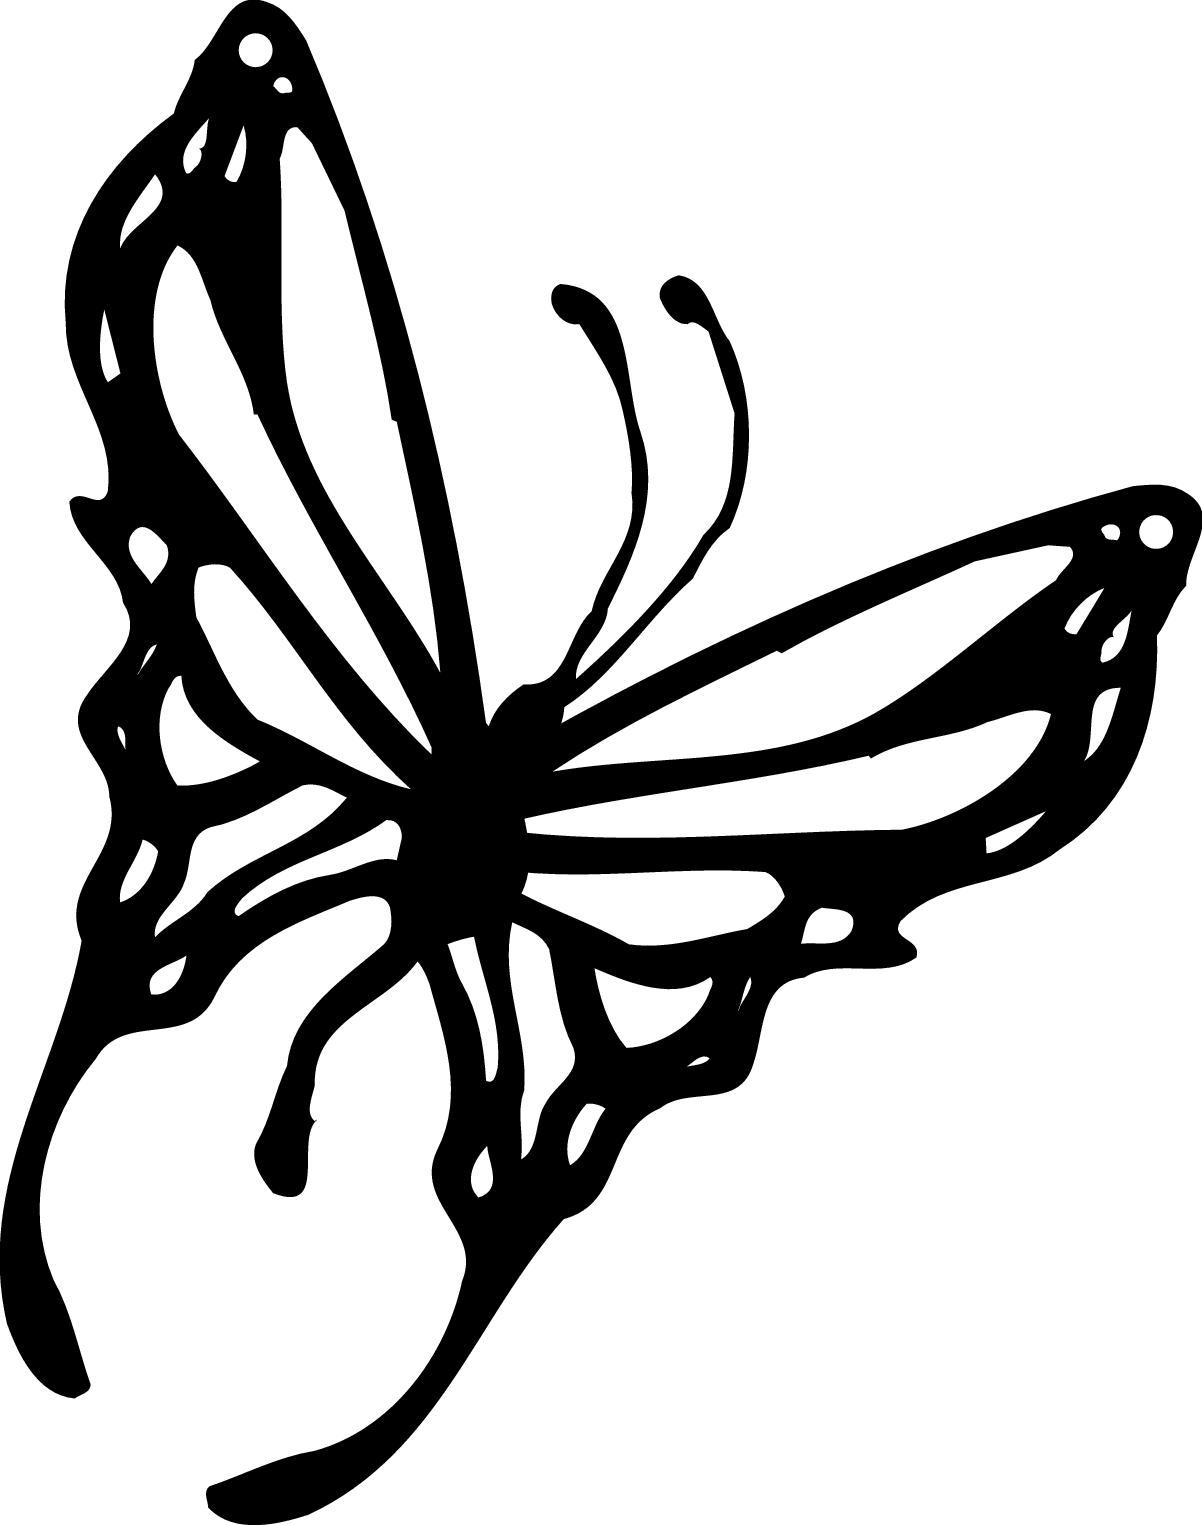 Free Butterfly Border Clipart Download Free Clip Art Free Clip Art On Clipart Library